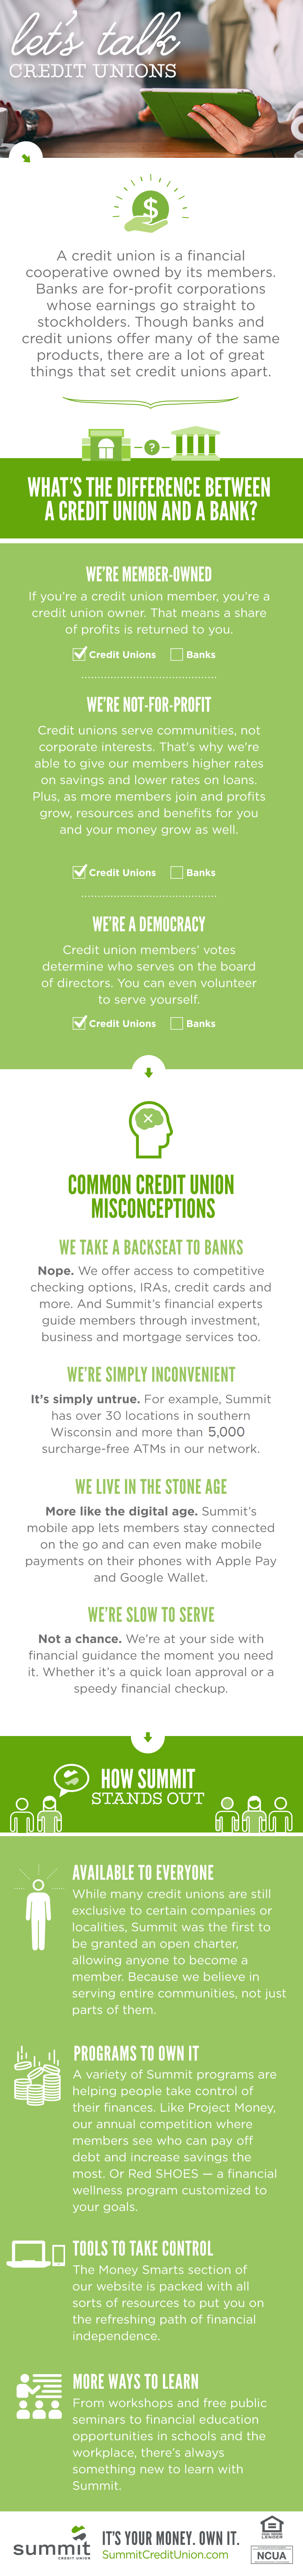 what's the difference between a bank and a credit union? | summit